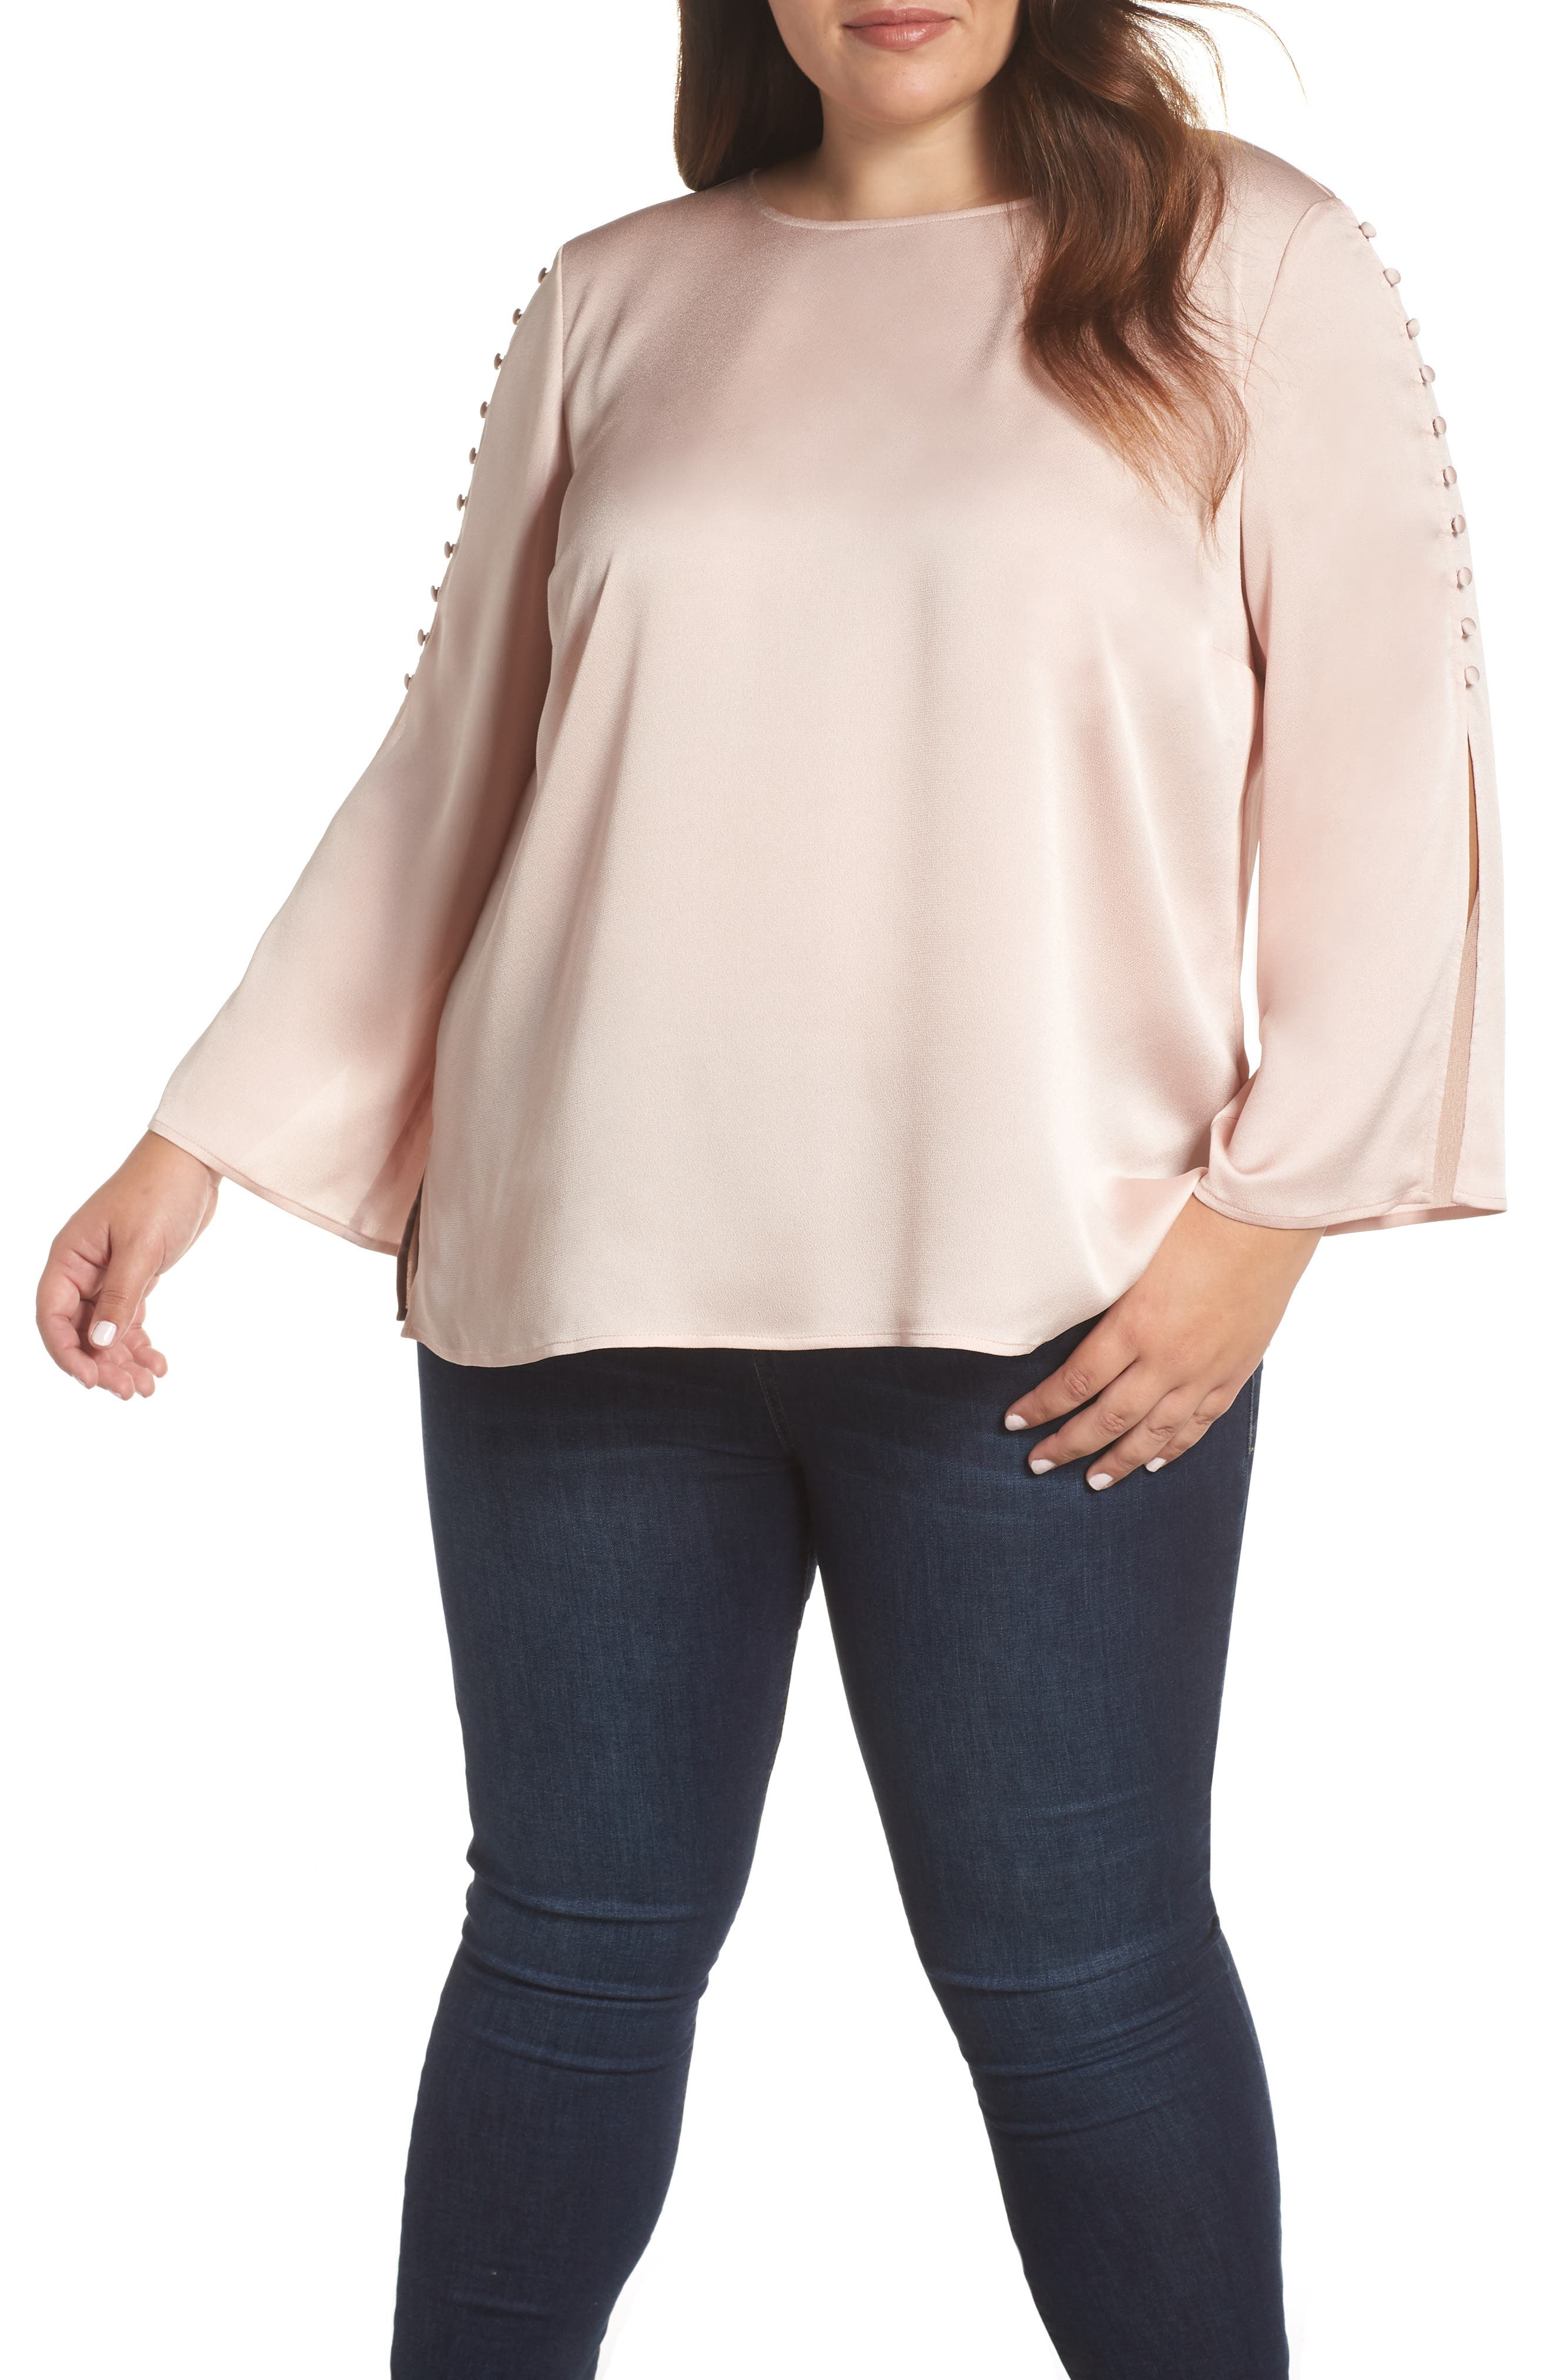 VINCE CAMUTO, Button Bell Sleeve Blouse, Main thumbnail 1, color, ROSE BUFF